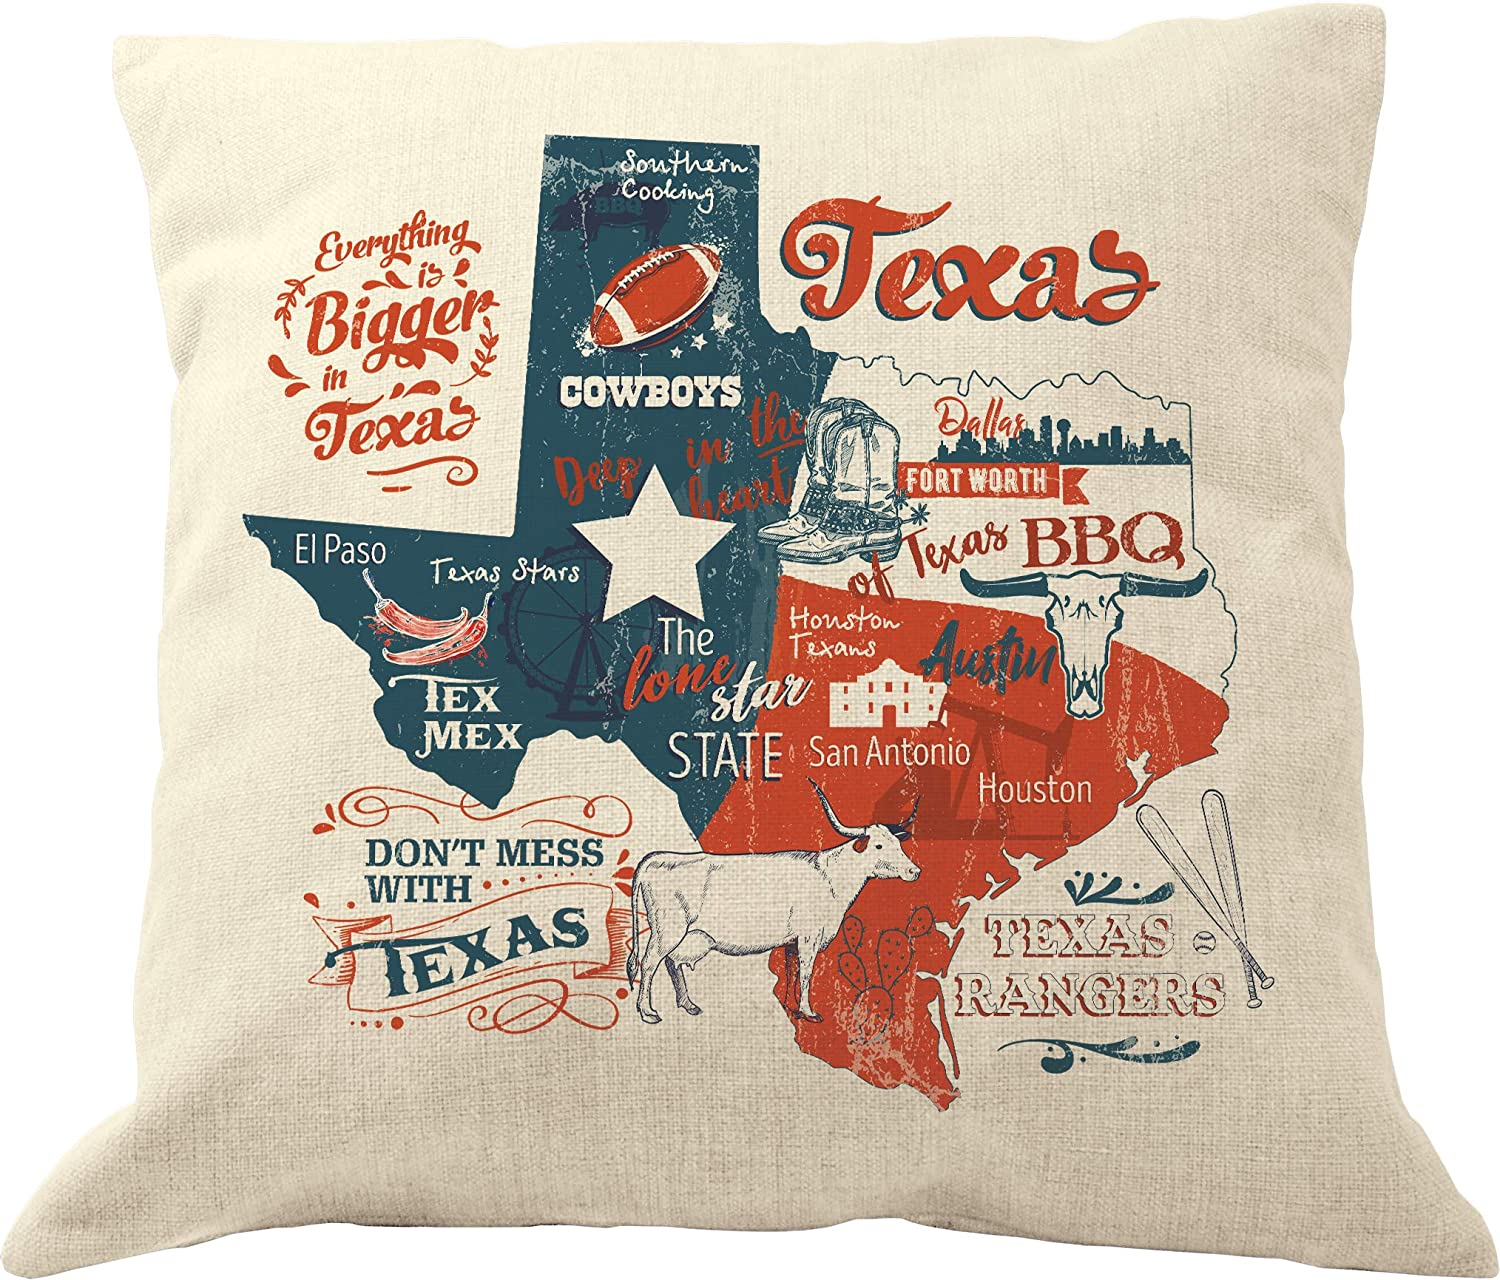 Drupsco 18x18 Texas Throw Pillow Cover Cotton Linen Texas Decor Pillow Case Texas Themed Home Decor Home Kitchen